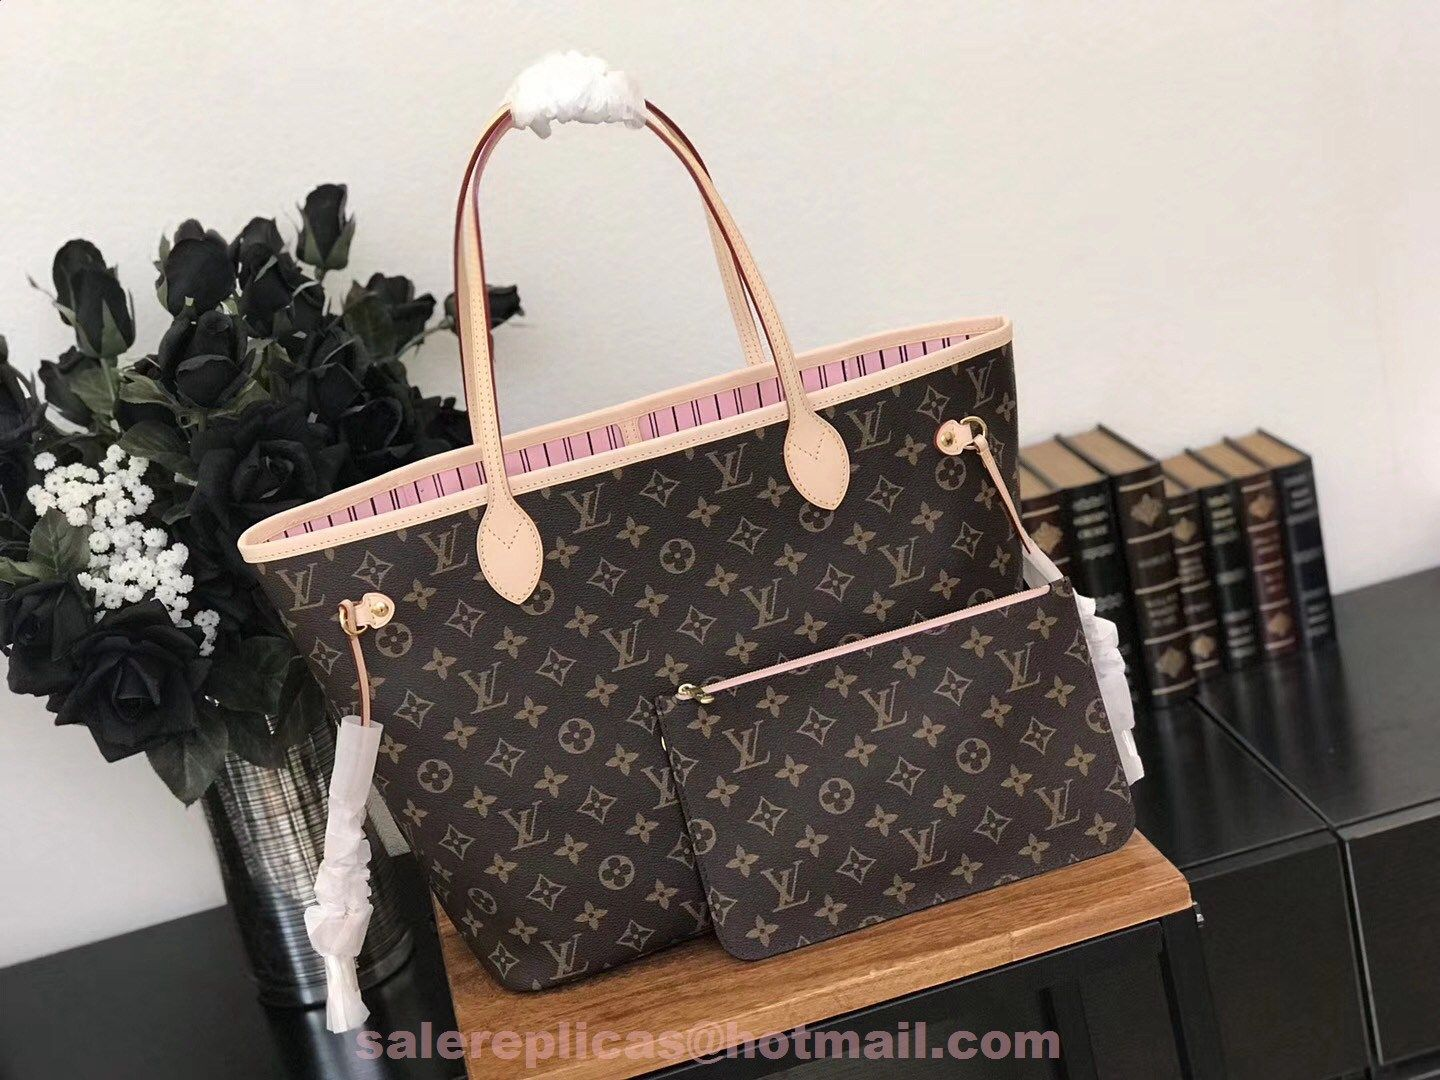 021cdb73e350 replica Louis Vuitton Neverfull MM Monogram Canvas Handbag M41178-Pivoine